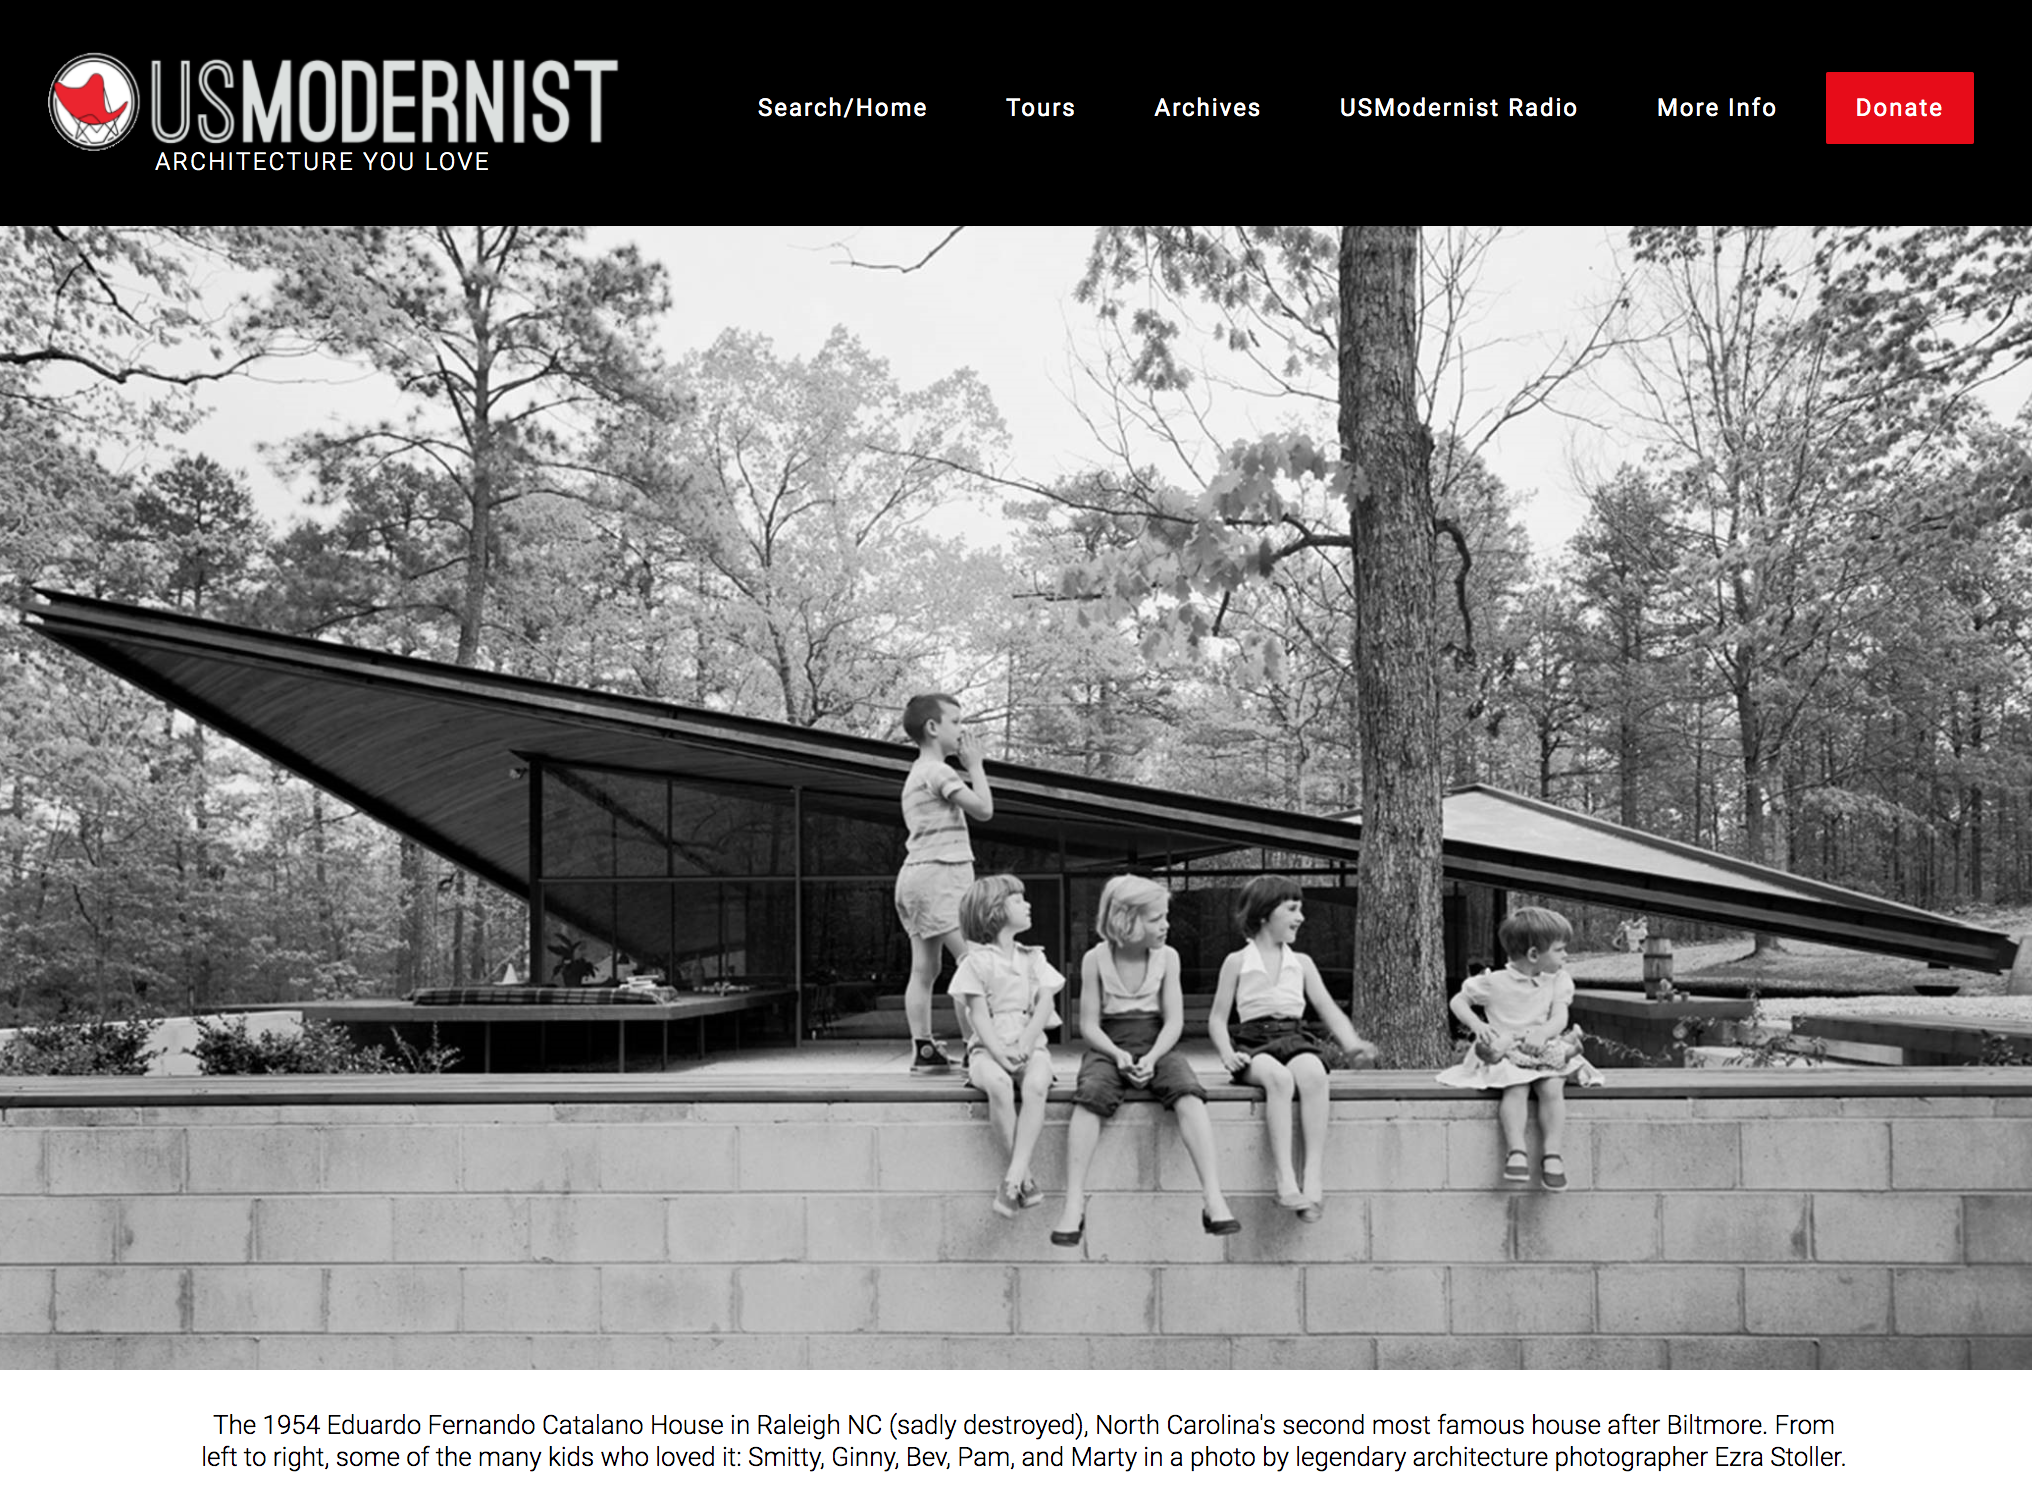 photo of usmodernist home page